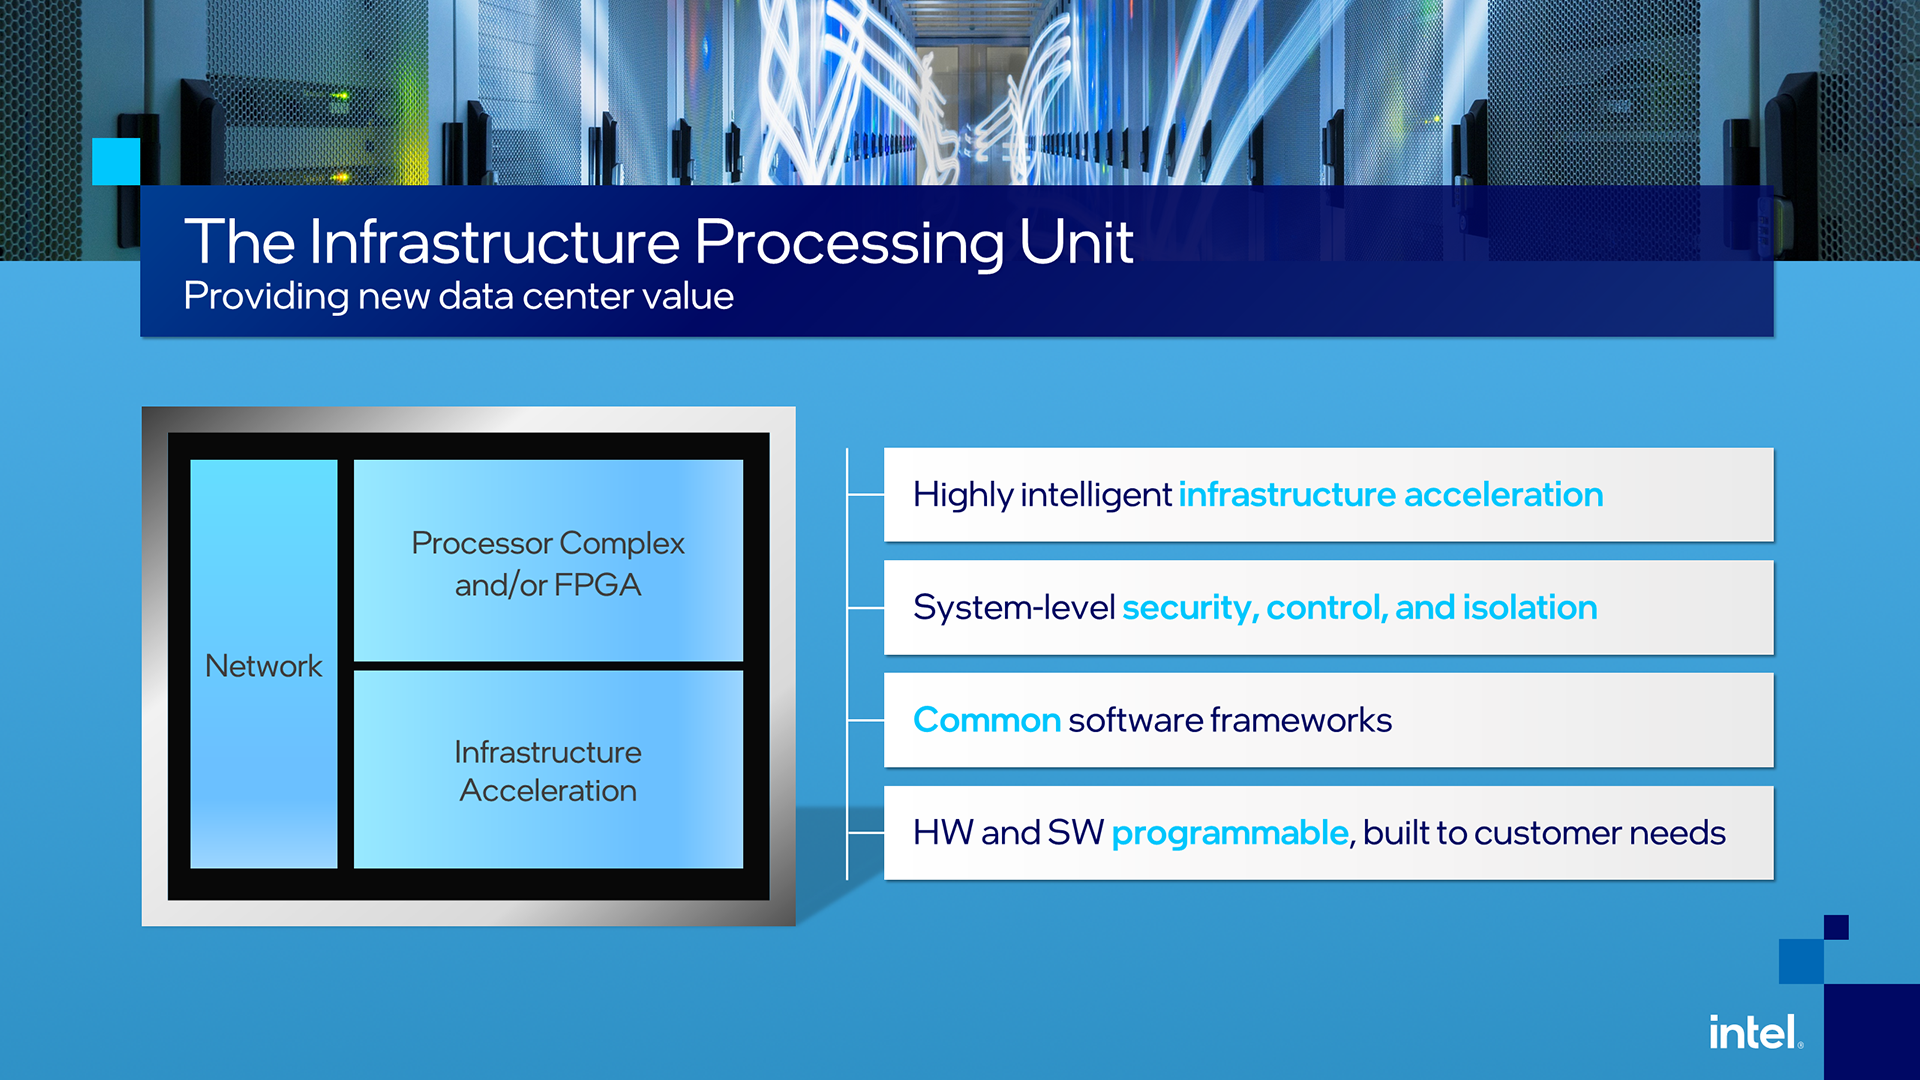 Intel launches Infrastructure Processing Unit for cloud providers, telcos